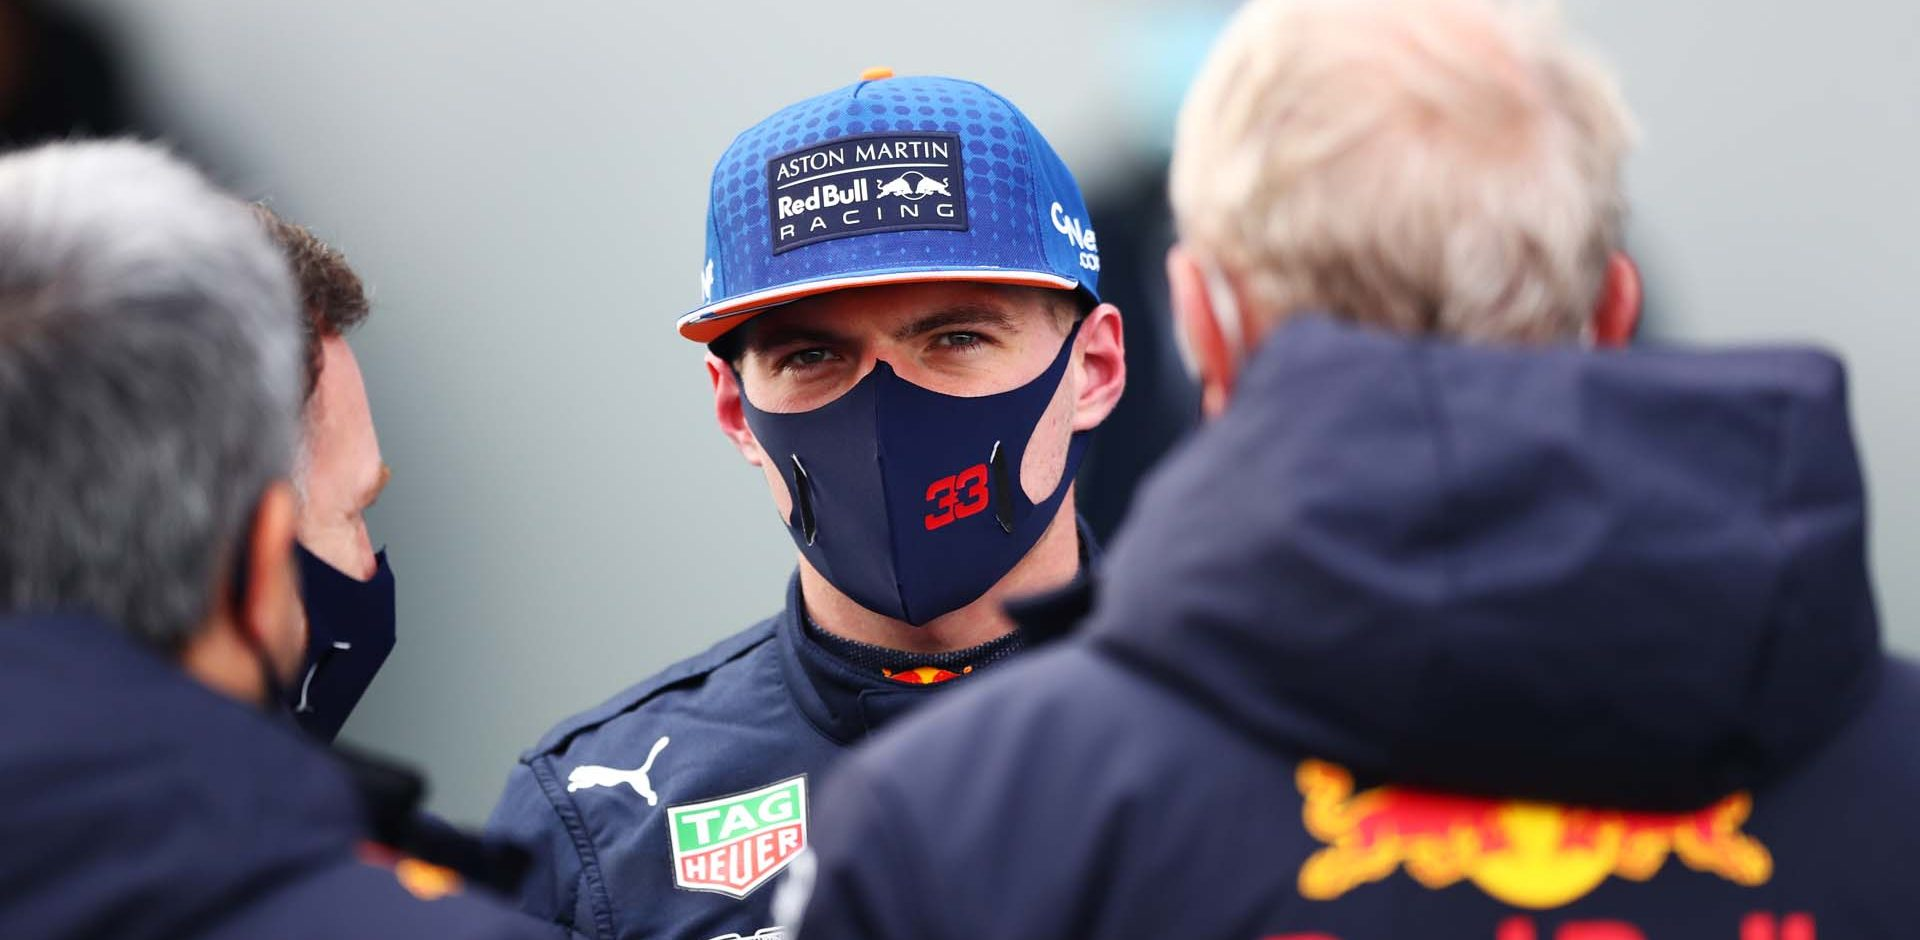 NUERBURG, GERMANY - OCTOBER 11: Second placed Max Verstappen of Netherlands and Red Bull Racing looks on in parc ferme during the F1 Eifel Grand Prix at Nuerburgring on October 11, 2020 in Nuerburg, Germany. (Photo by Matthias Schrader - Pool/Getty Images)